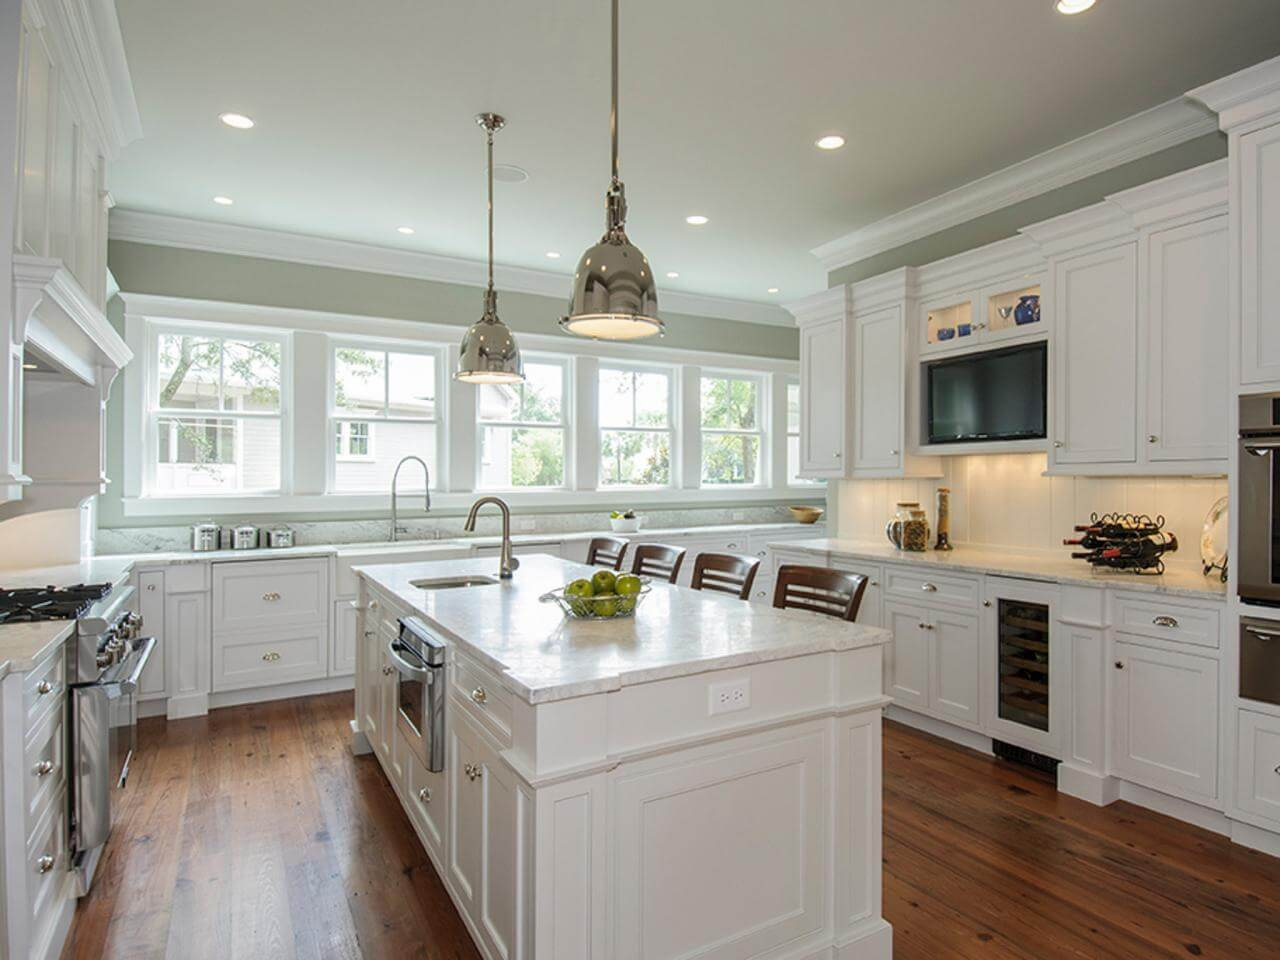 How to Paint Kitchen Cabinets White